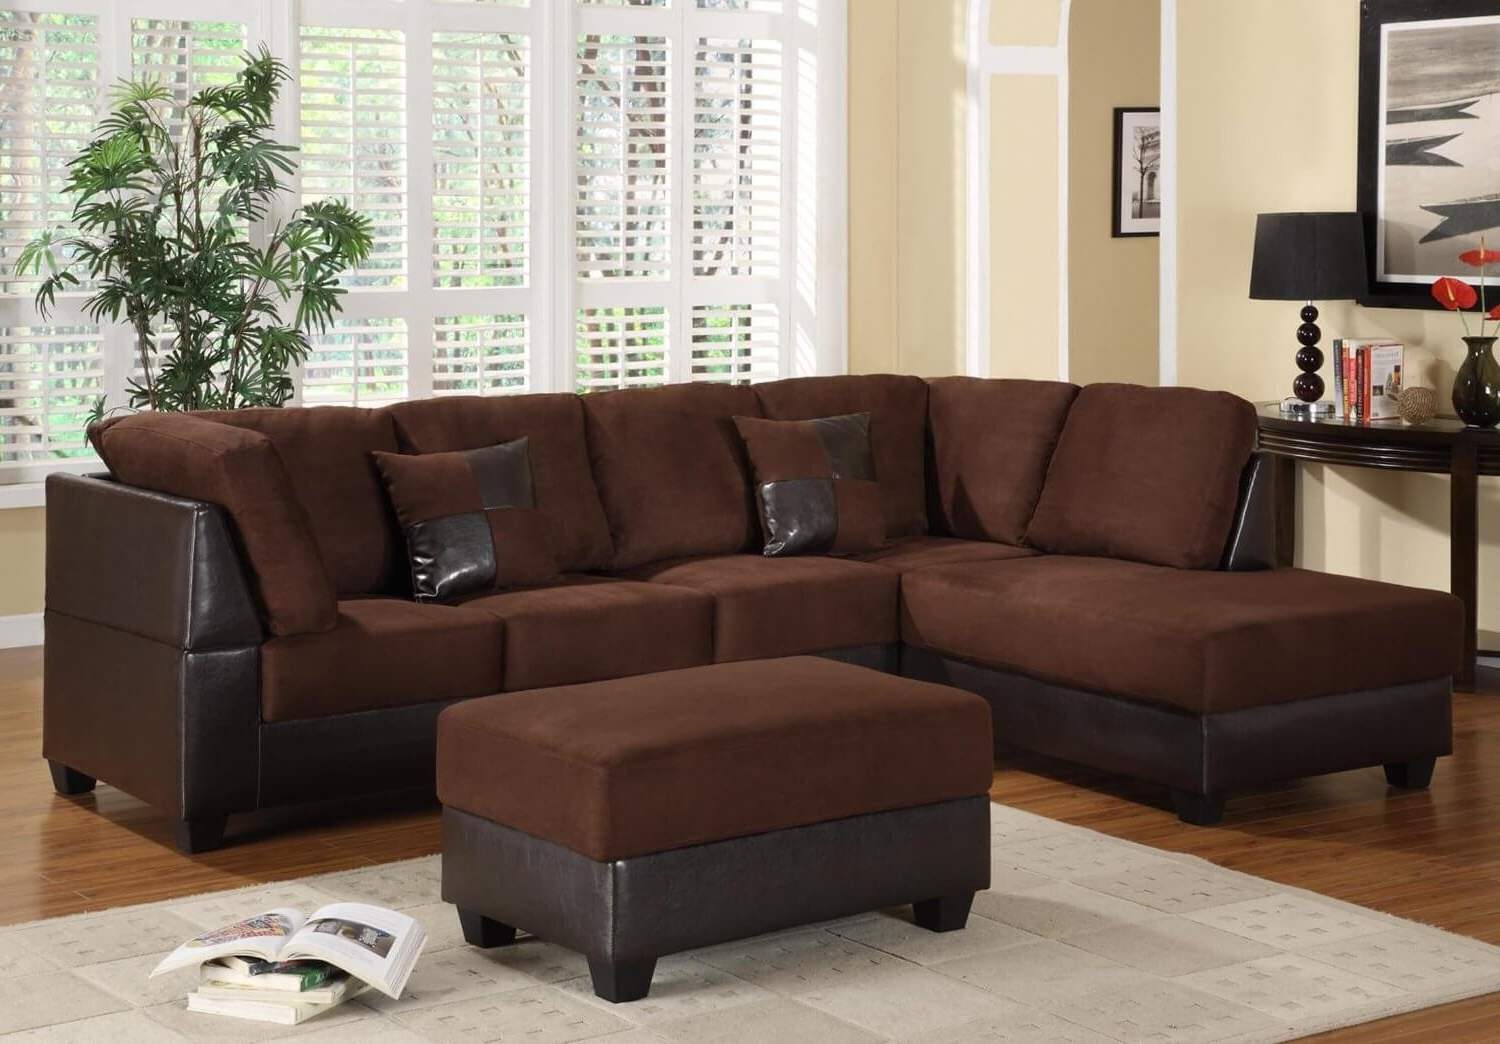 Latest On Sale Sectional Sofas With 40 Cheap Sectional Sofas Under $500 For  (View 7 of 20)